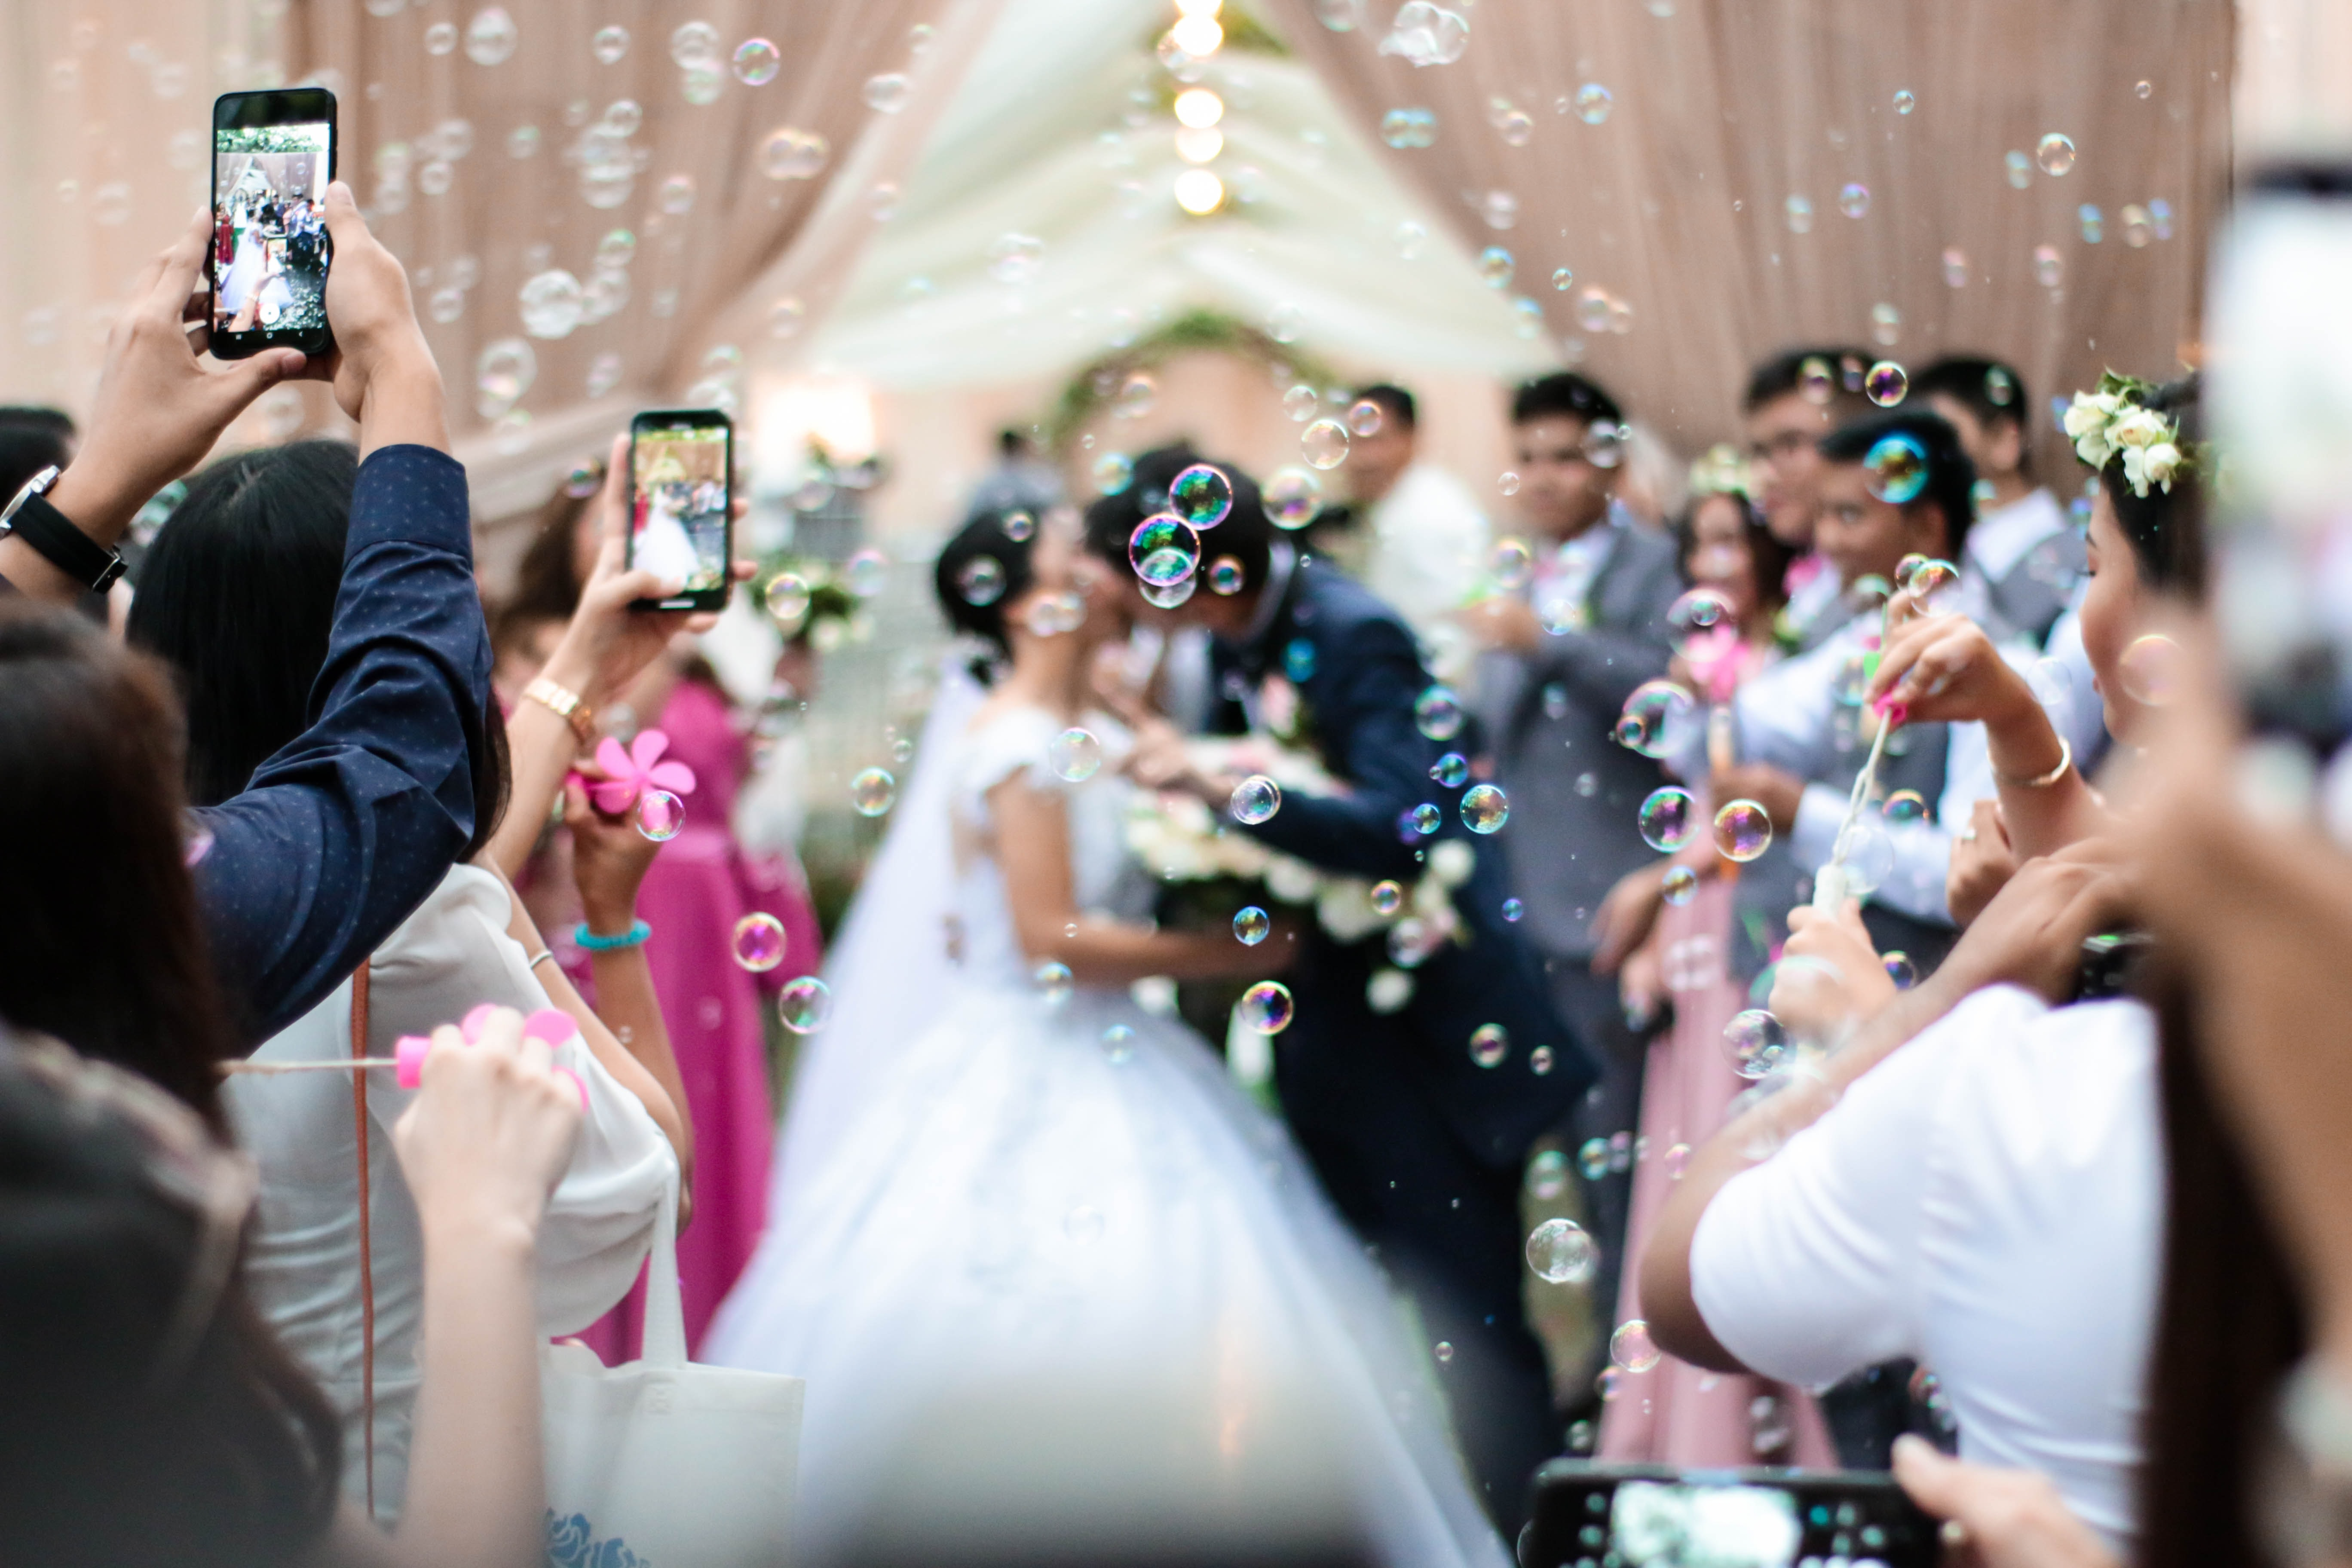 [Image description: various phones take pictures of the bride and groom kissing] Via Unsplash